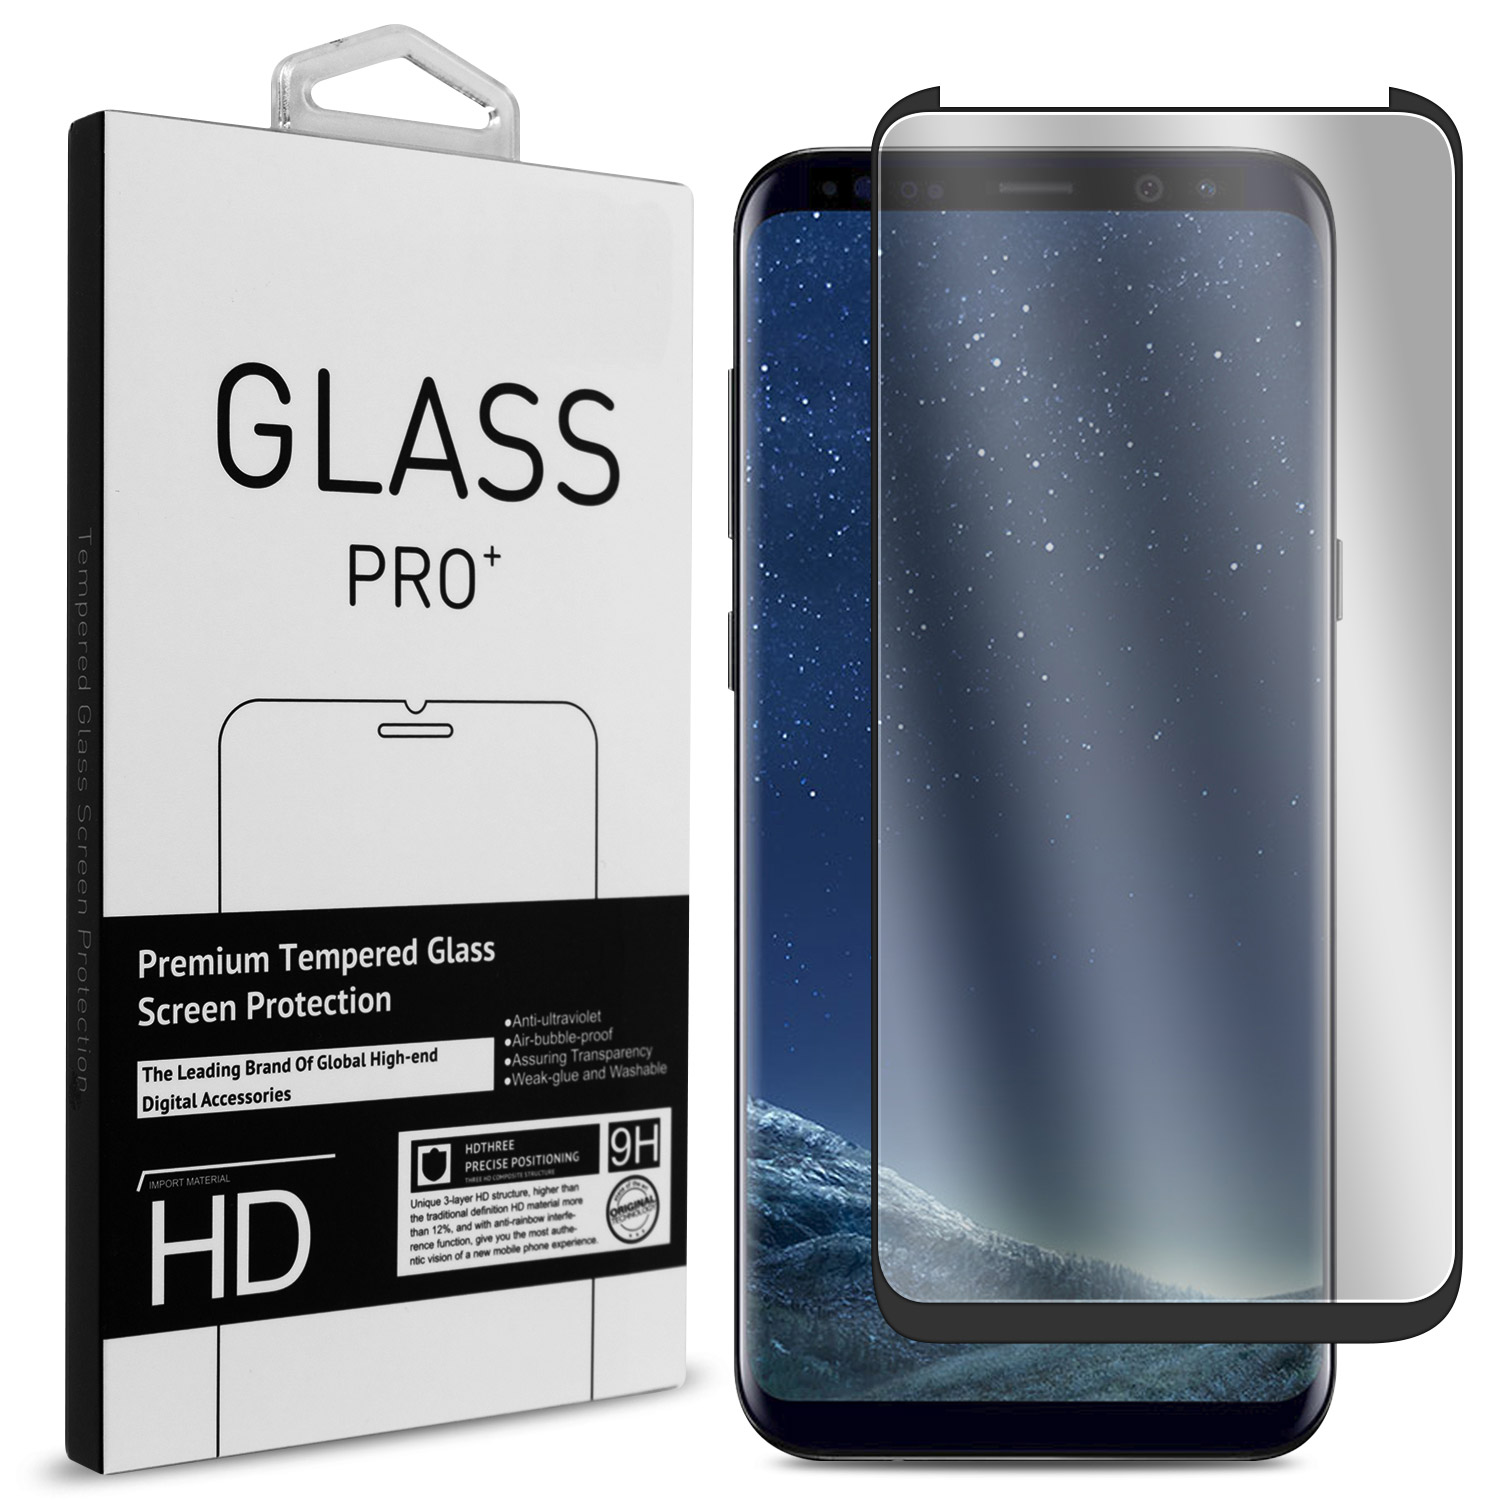 reputable site ac88c 77627 Case Friendly 9h Tempered Glass Screen Protector for Samsung Galaxy S8 Plus